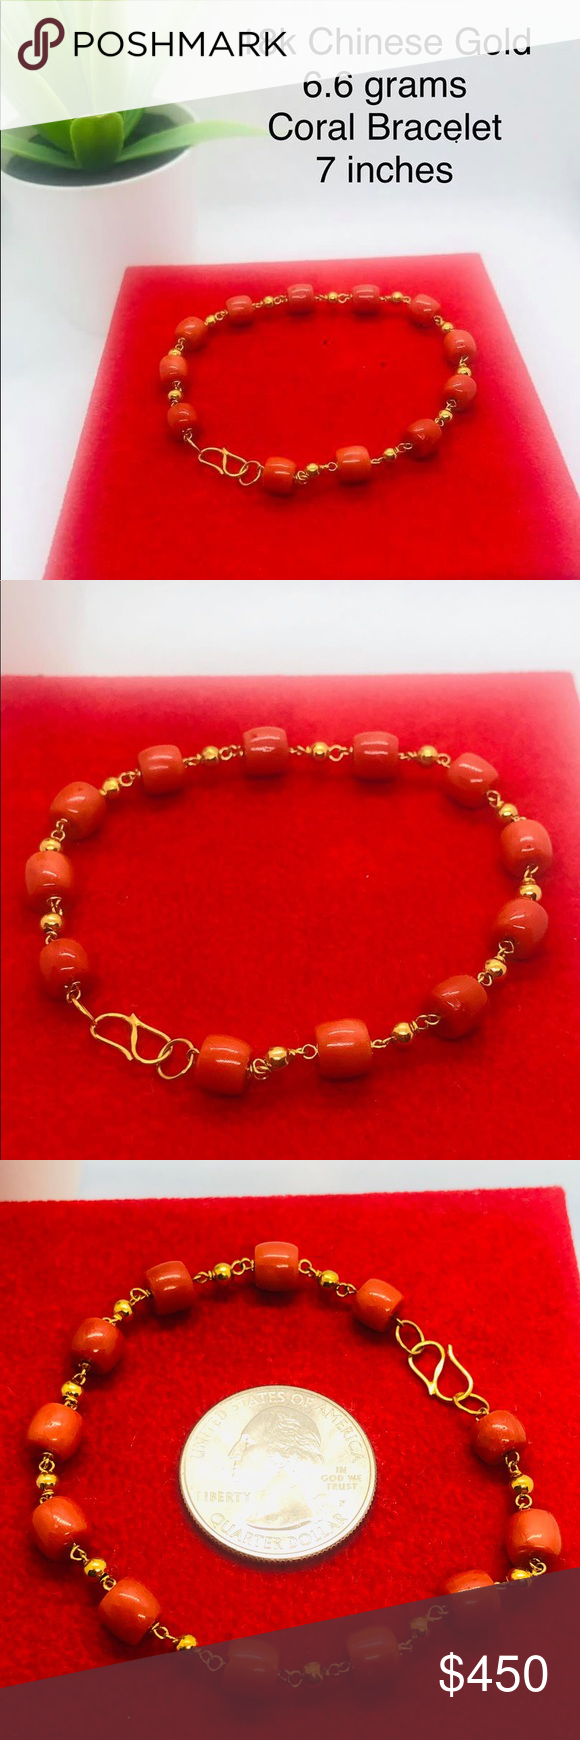 18k Real Chinese Gold Coral Bracelet 100% Real Coral